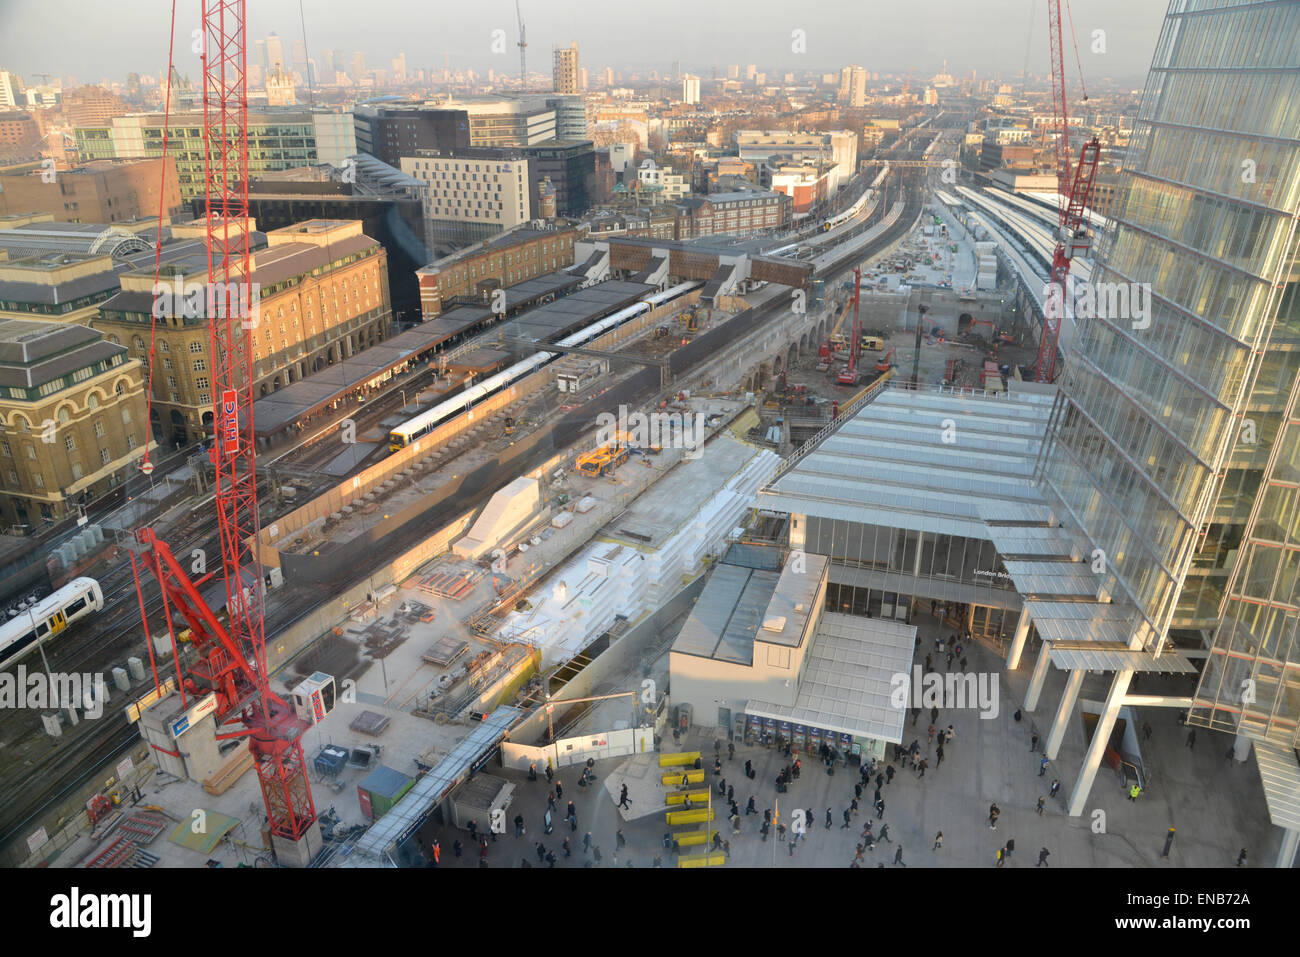 London bridge station construction work seen from above for Design agency london bridge